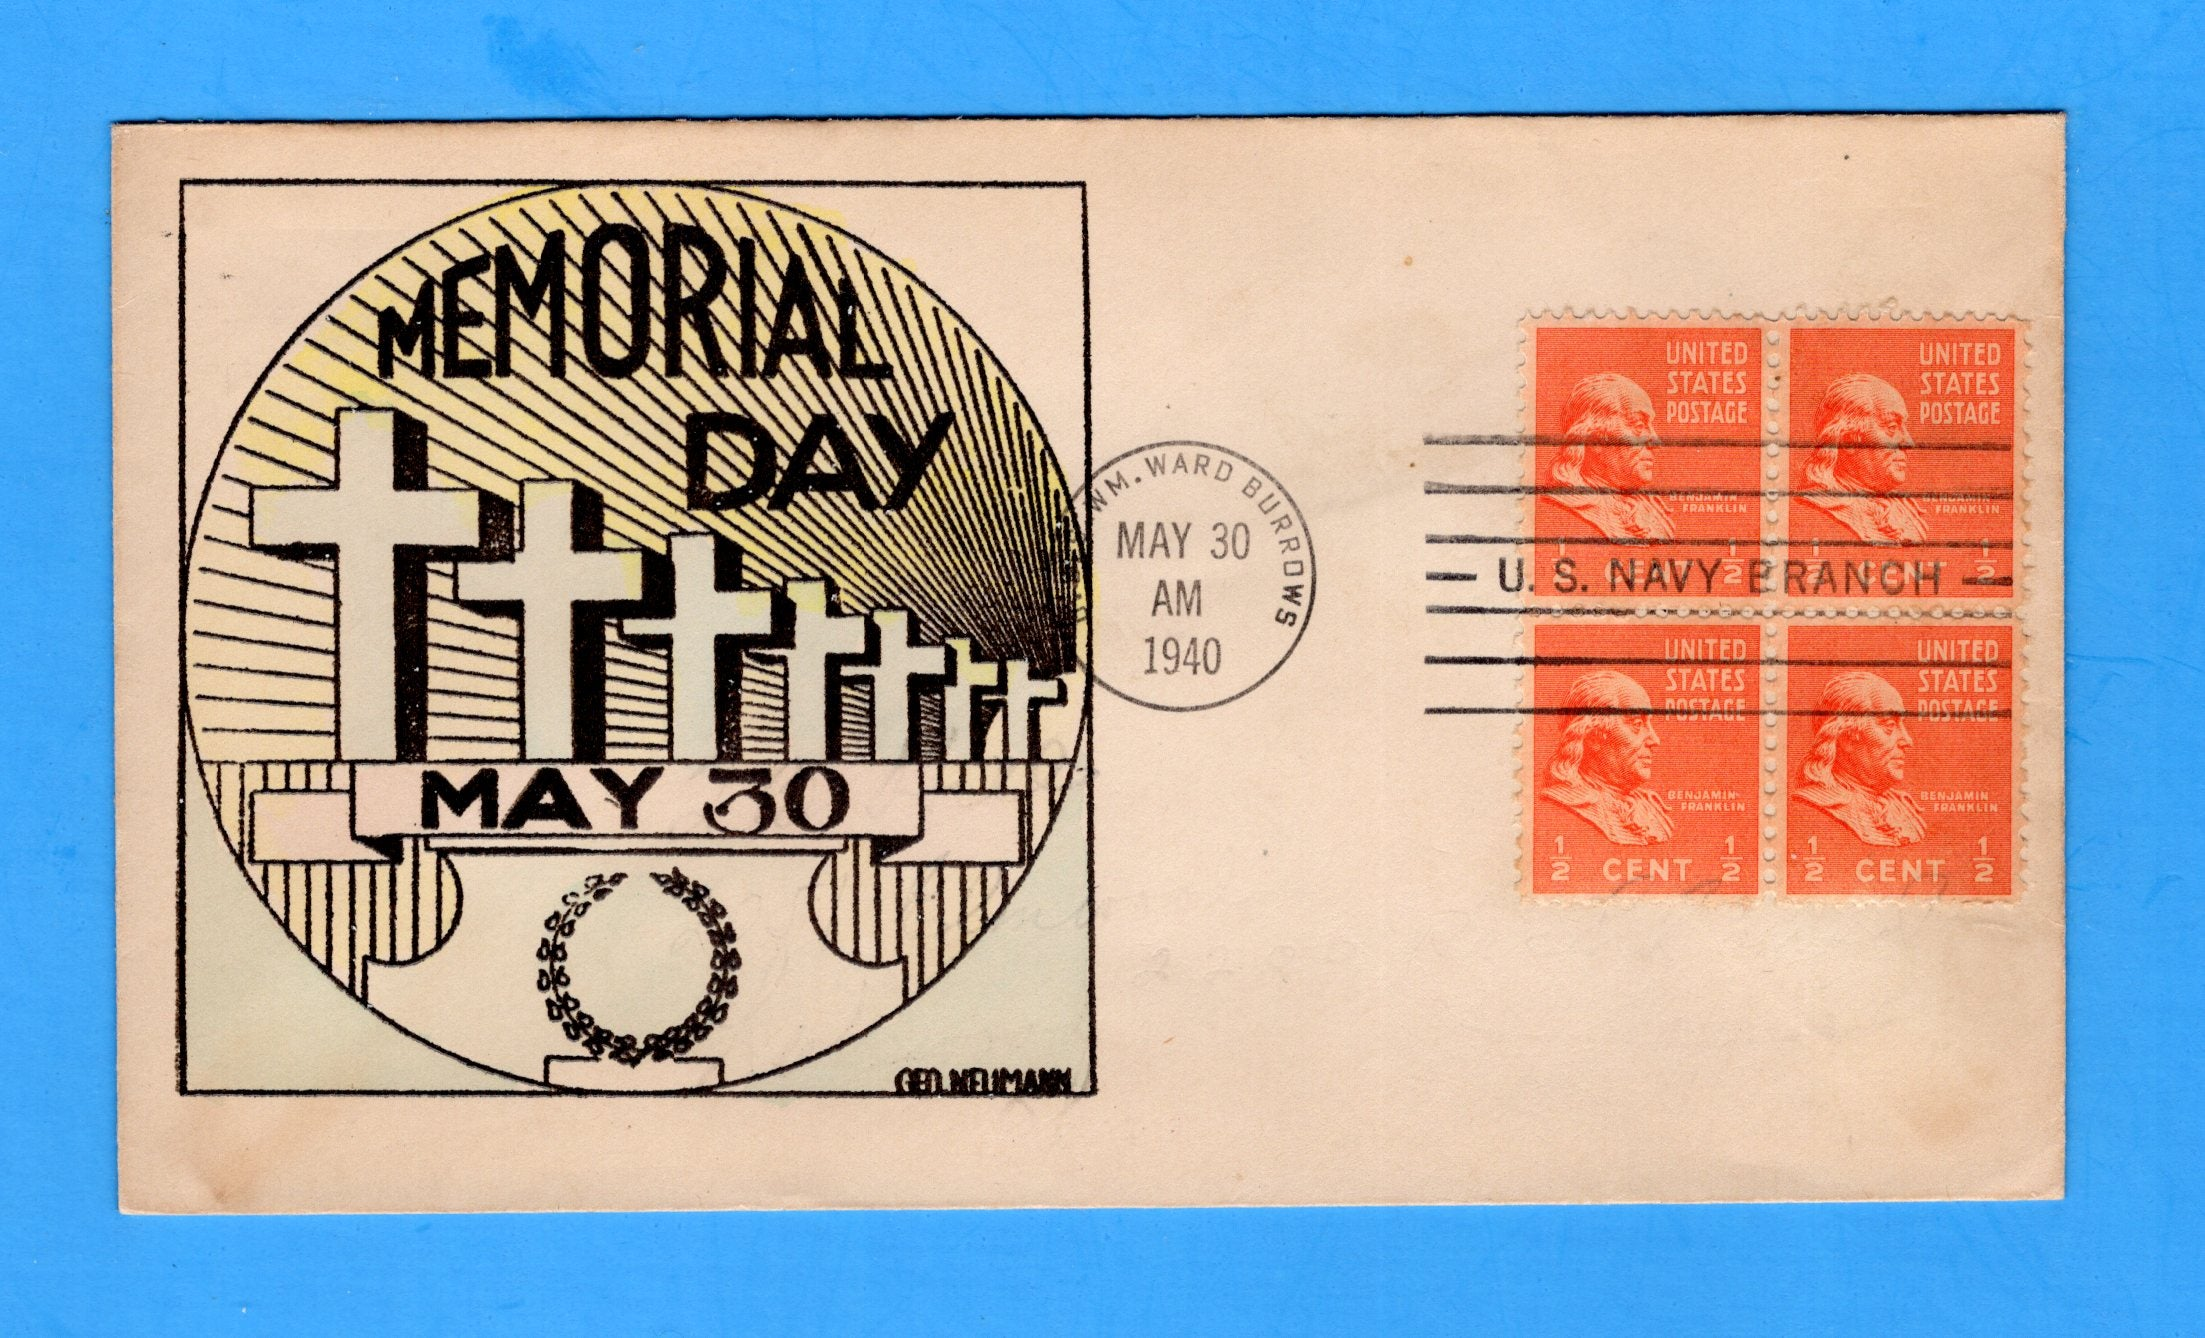 USS William Ward Burrows AP-6 Memorial Day May 30, 1940 - Raised Print Cachet